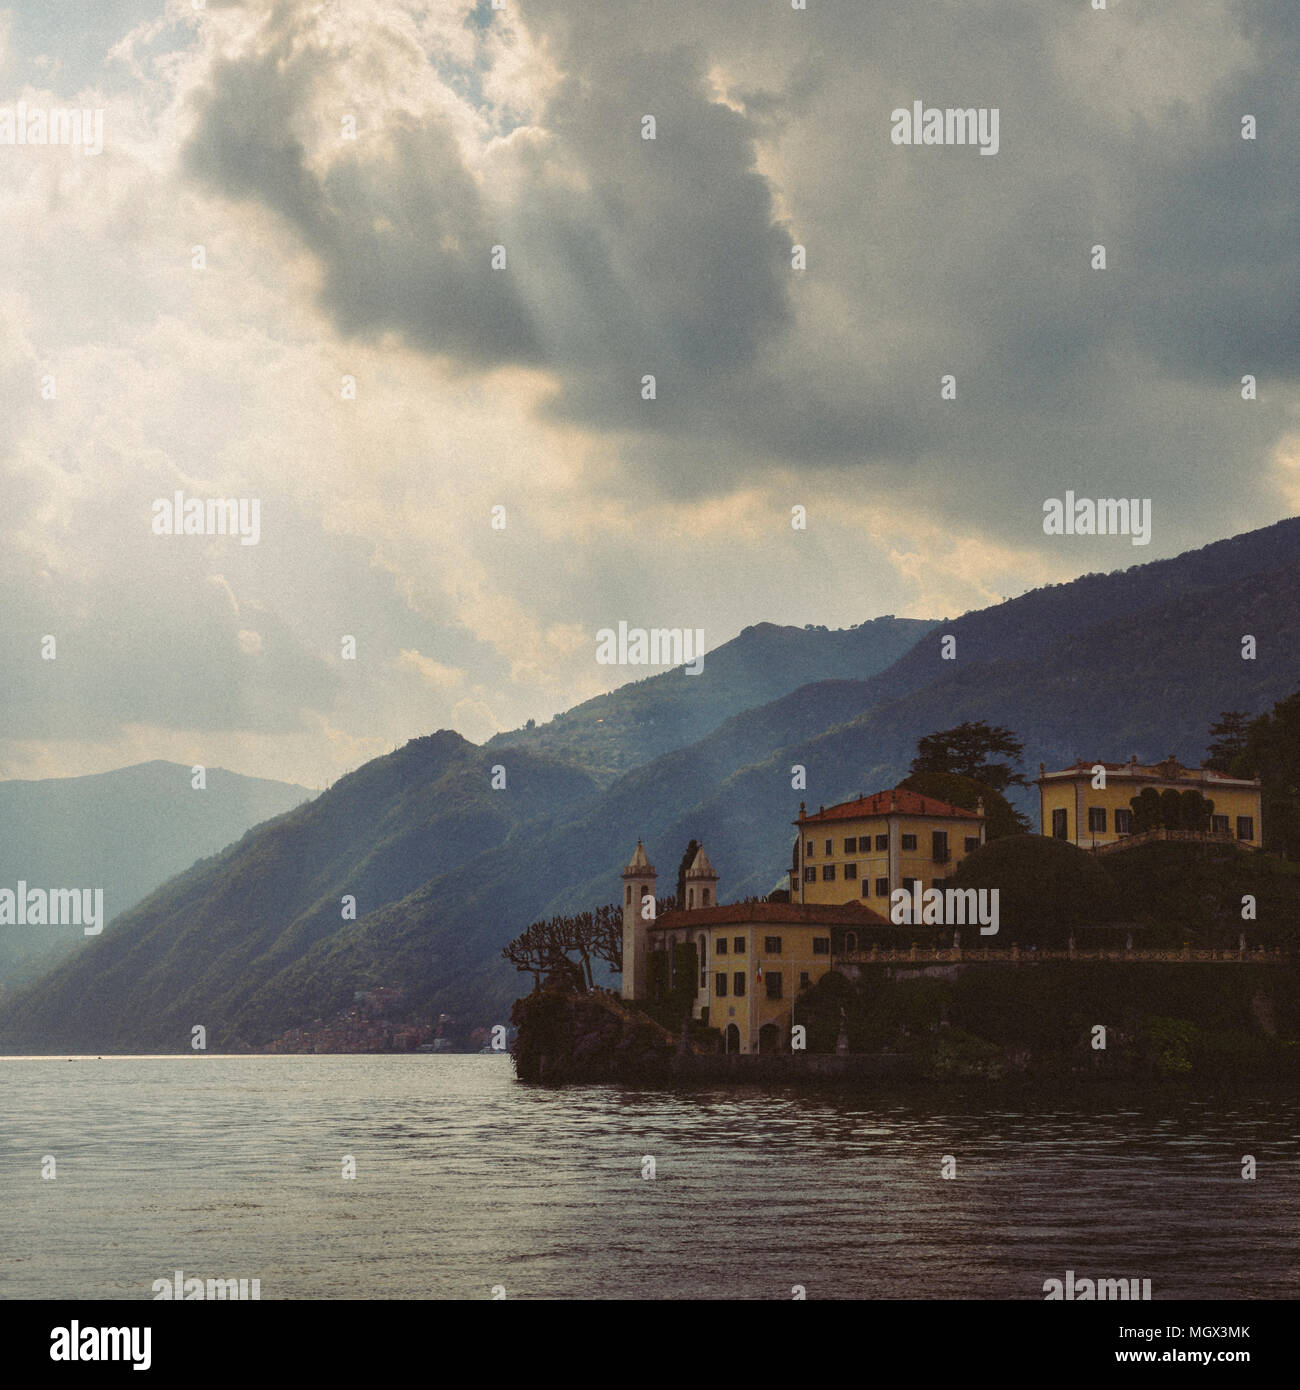 lake-como-in-northern-italys-lombardy-region-is-an-upscale-resort-area-known-for-its-dramatic-scenery-MGX3MK.jpg